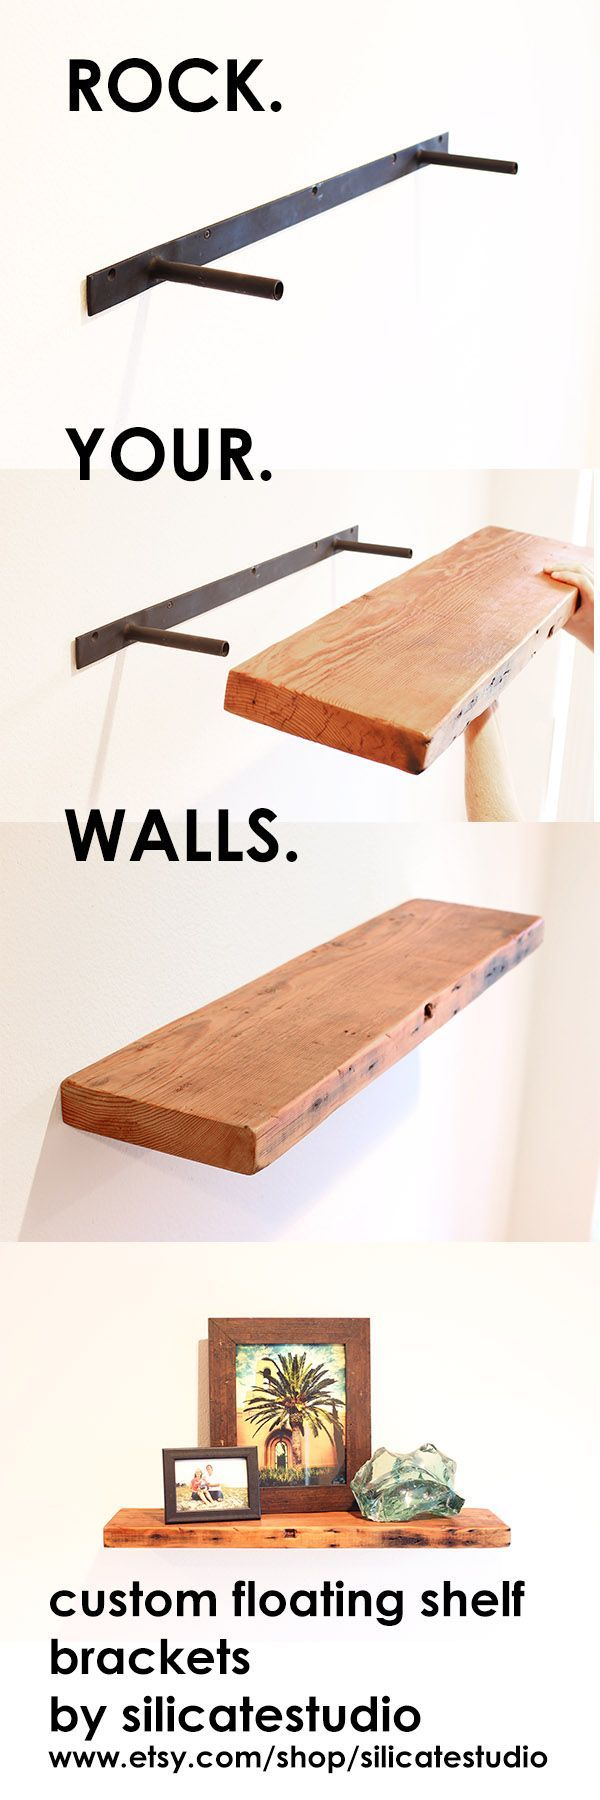 Make any slab of wood a floating shelf with a tough and invisible custom floating shelf bracket from silicate studio. Works especially well with reclaimed wood. www.etsy.com/shop/silicatestudio